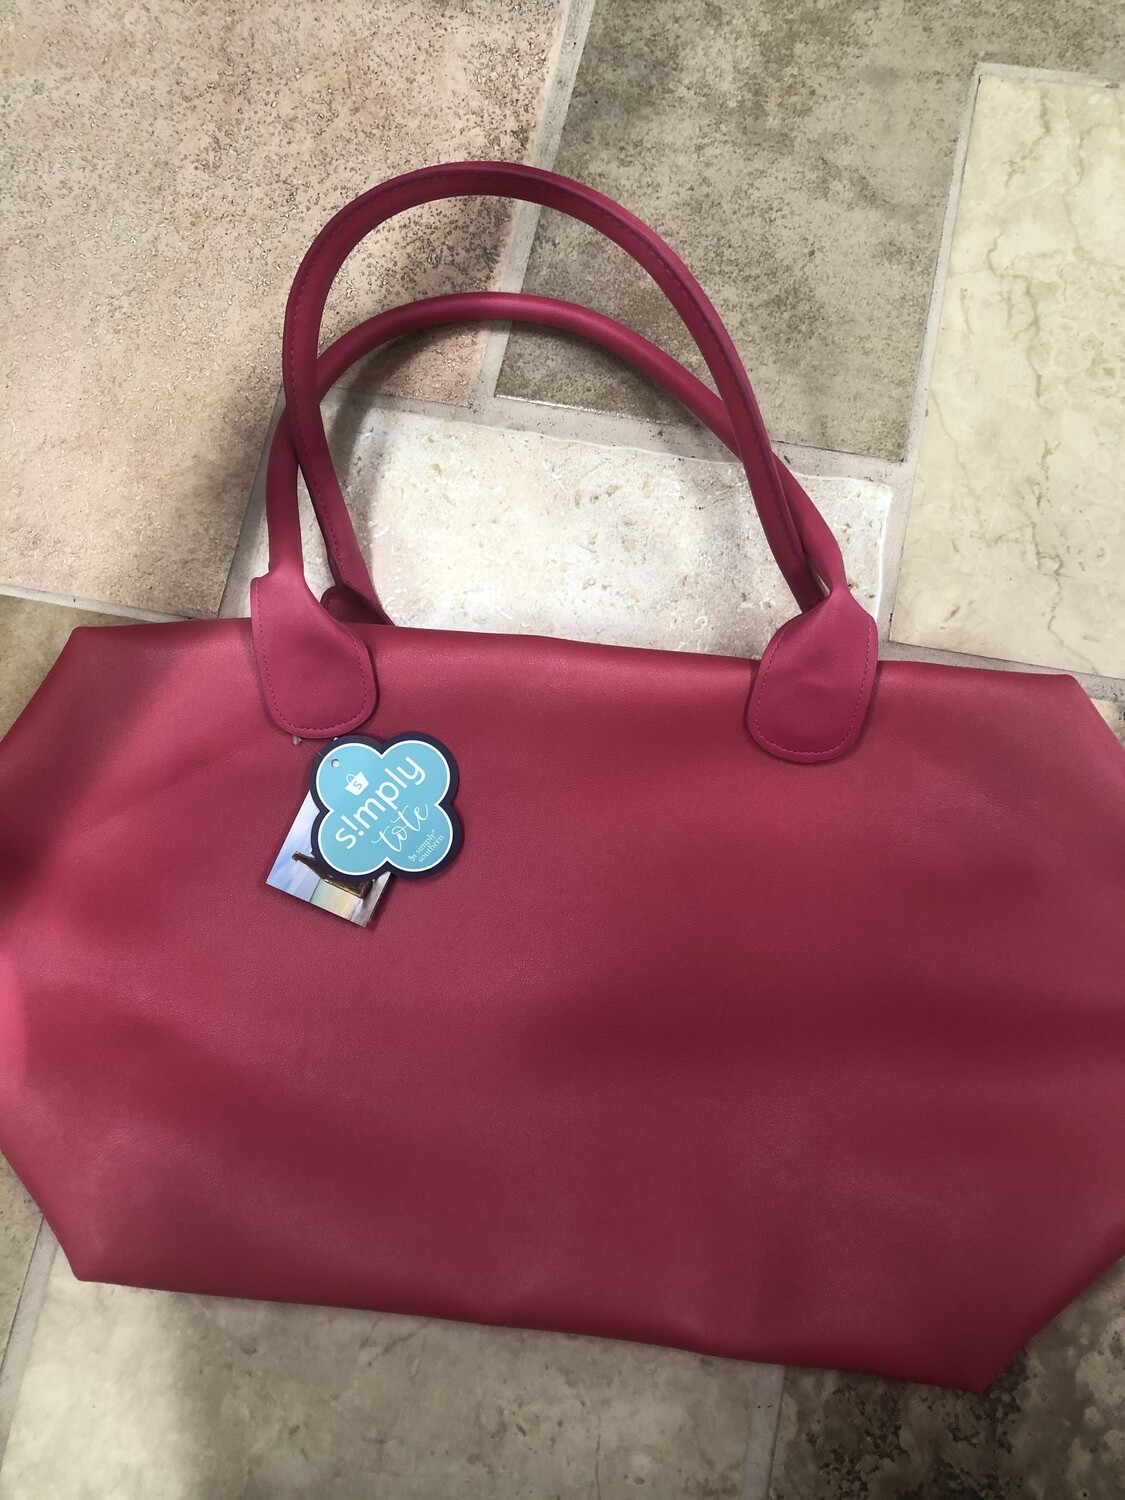 Lg Simply Tote Bag Inserts